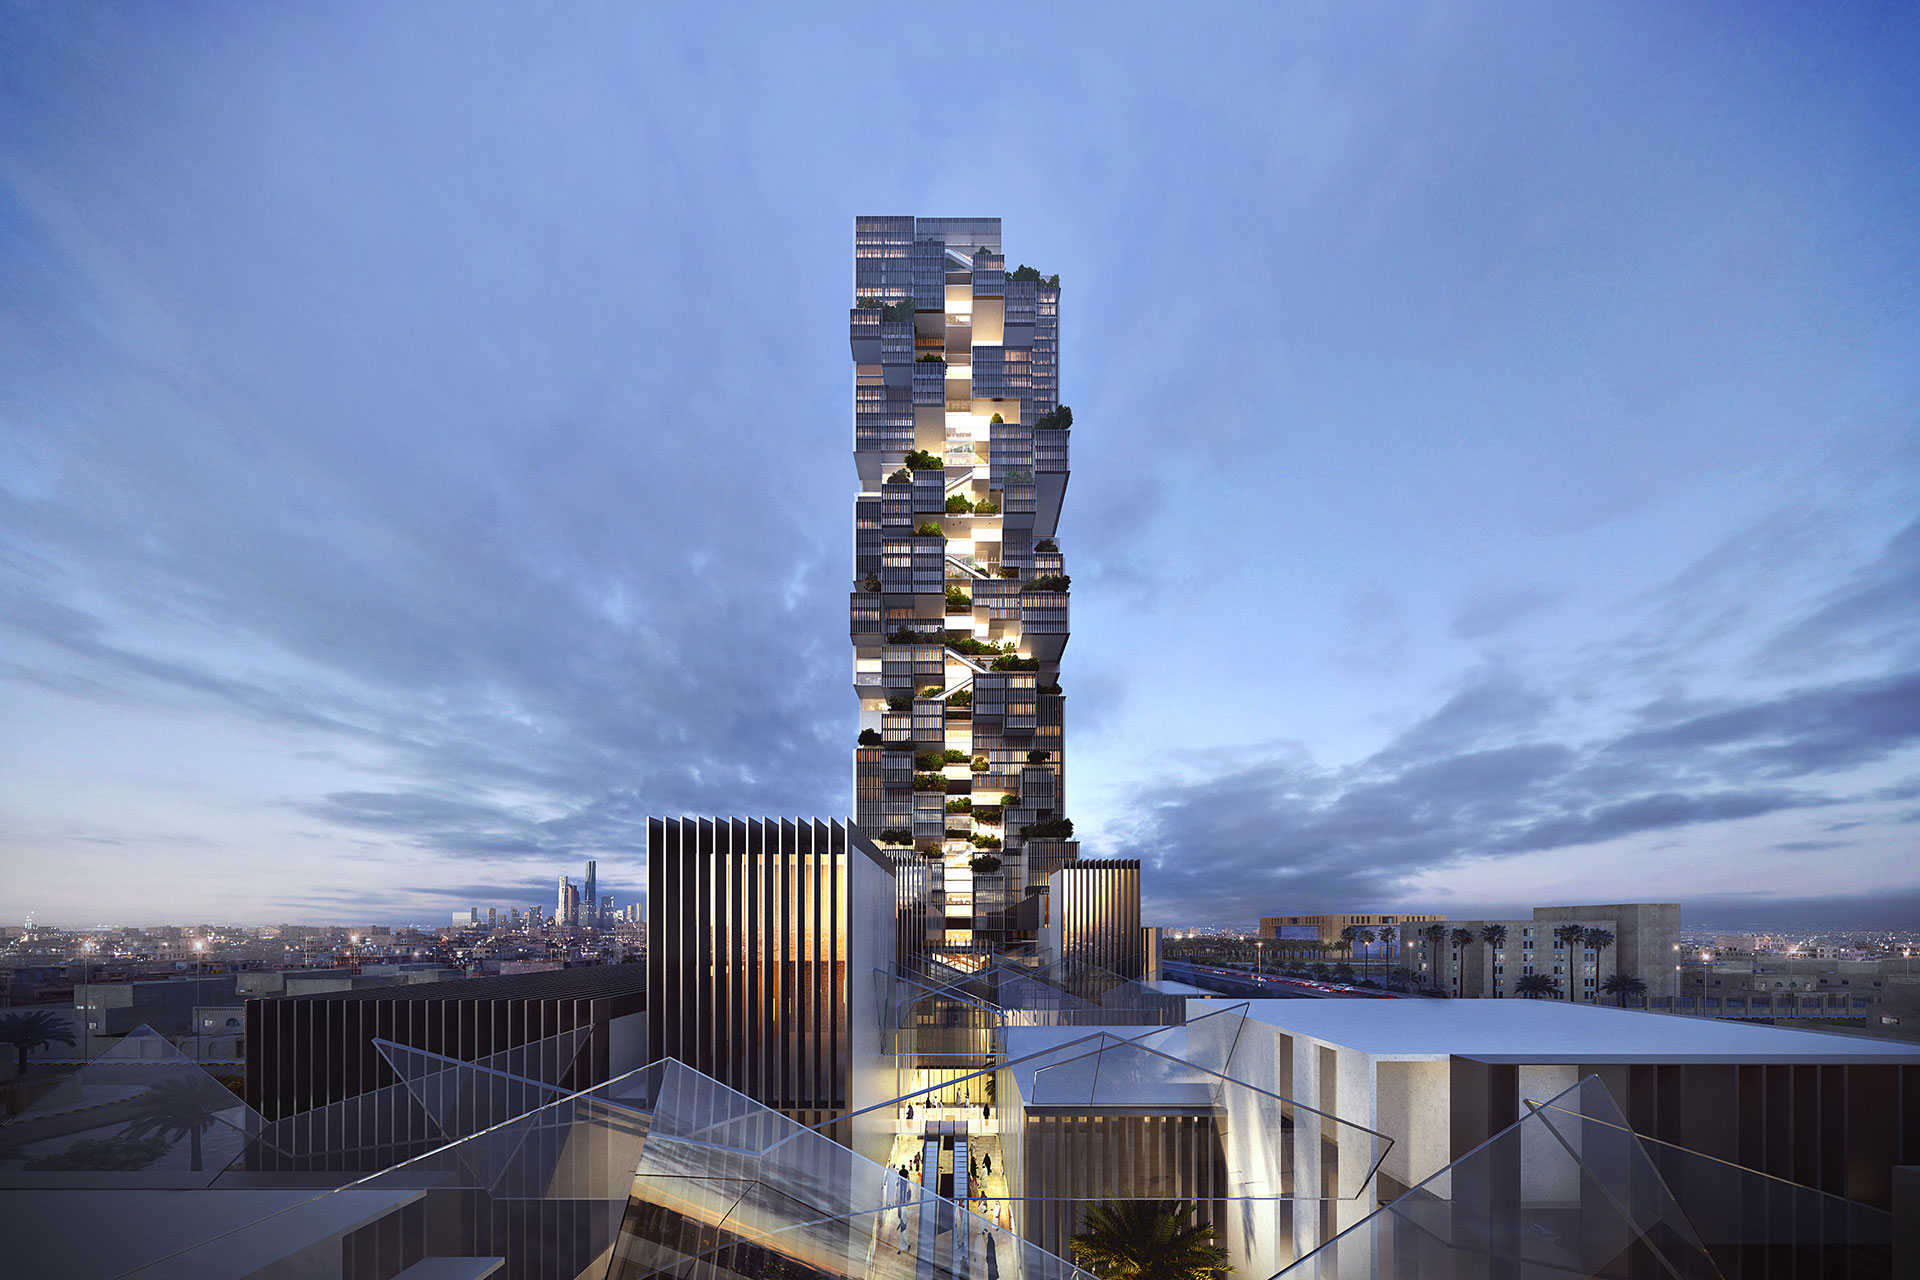 Mixed-Use Building / 109 Architects